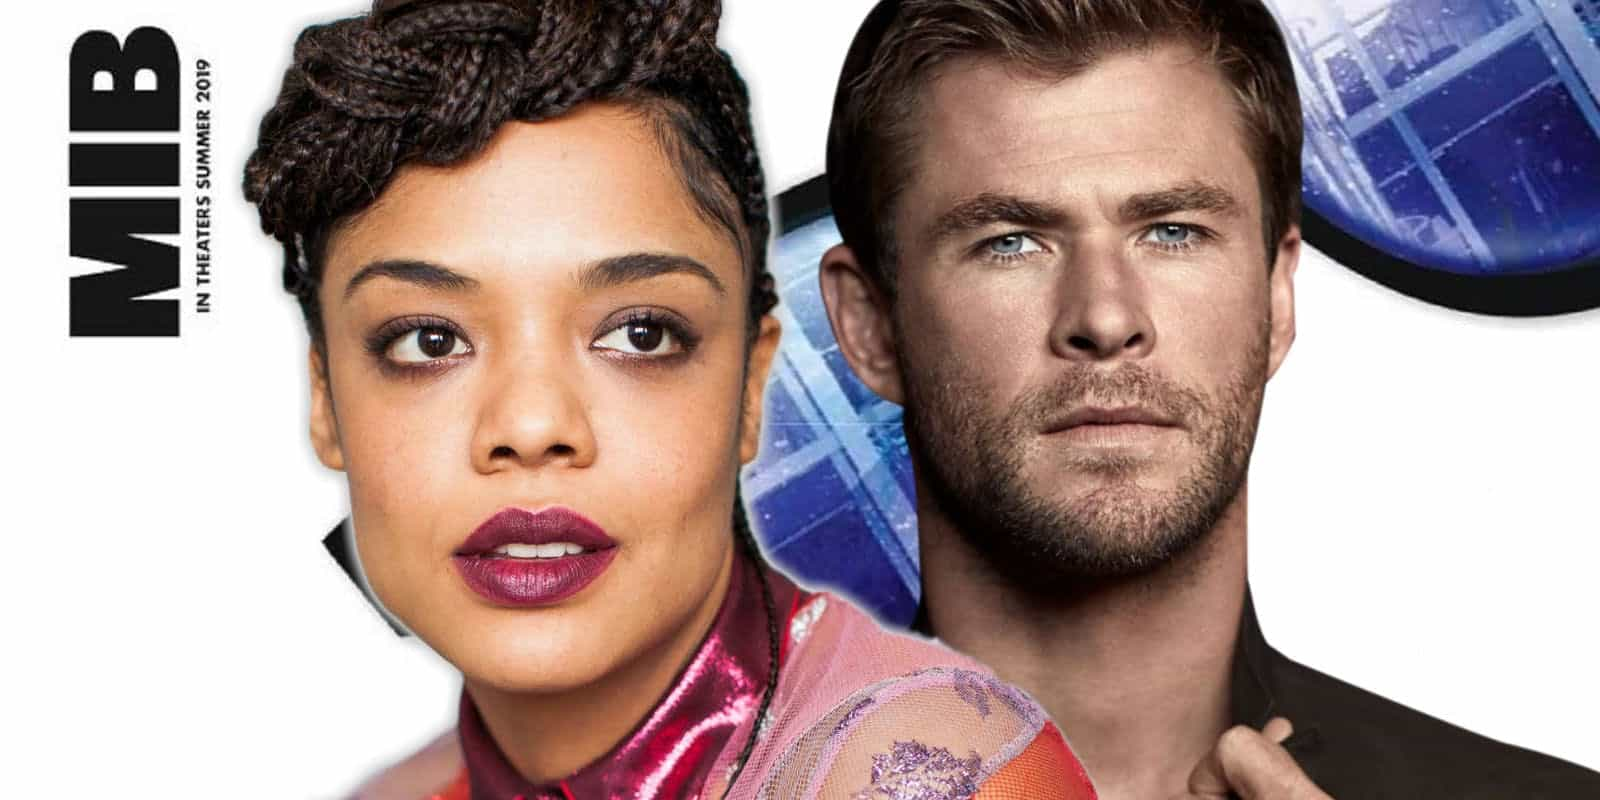 Men in Black International libera primera imagen oficial con Chris Hemsworth y Tessa Thompson sus protagonistas